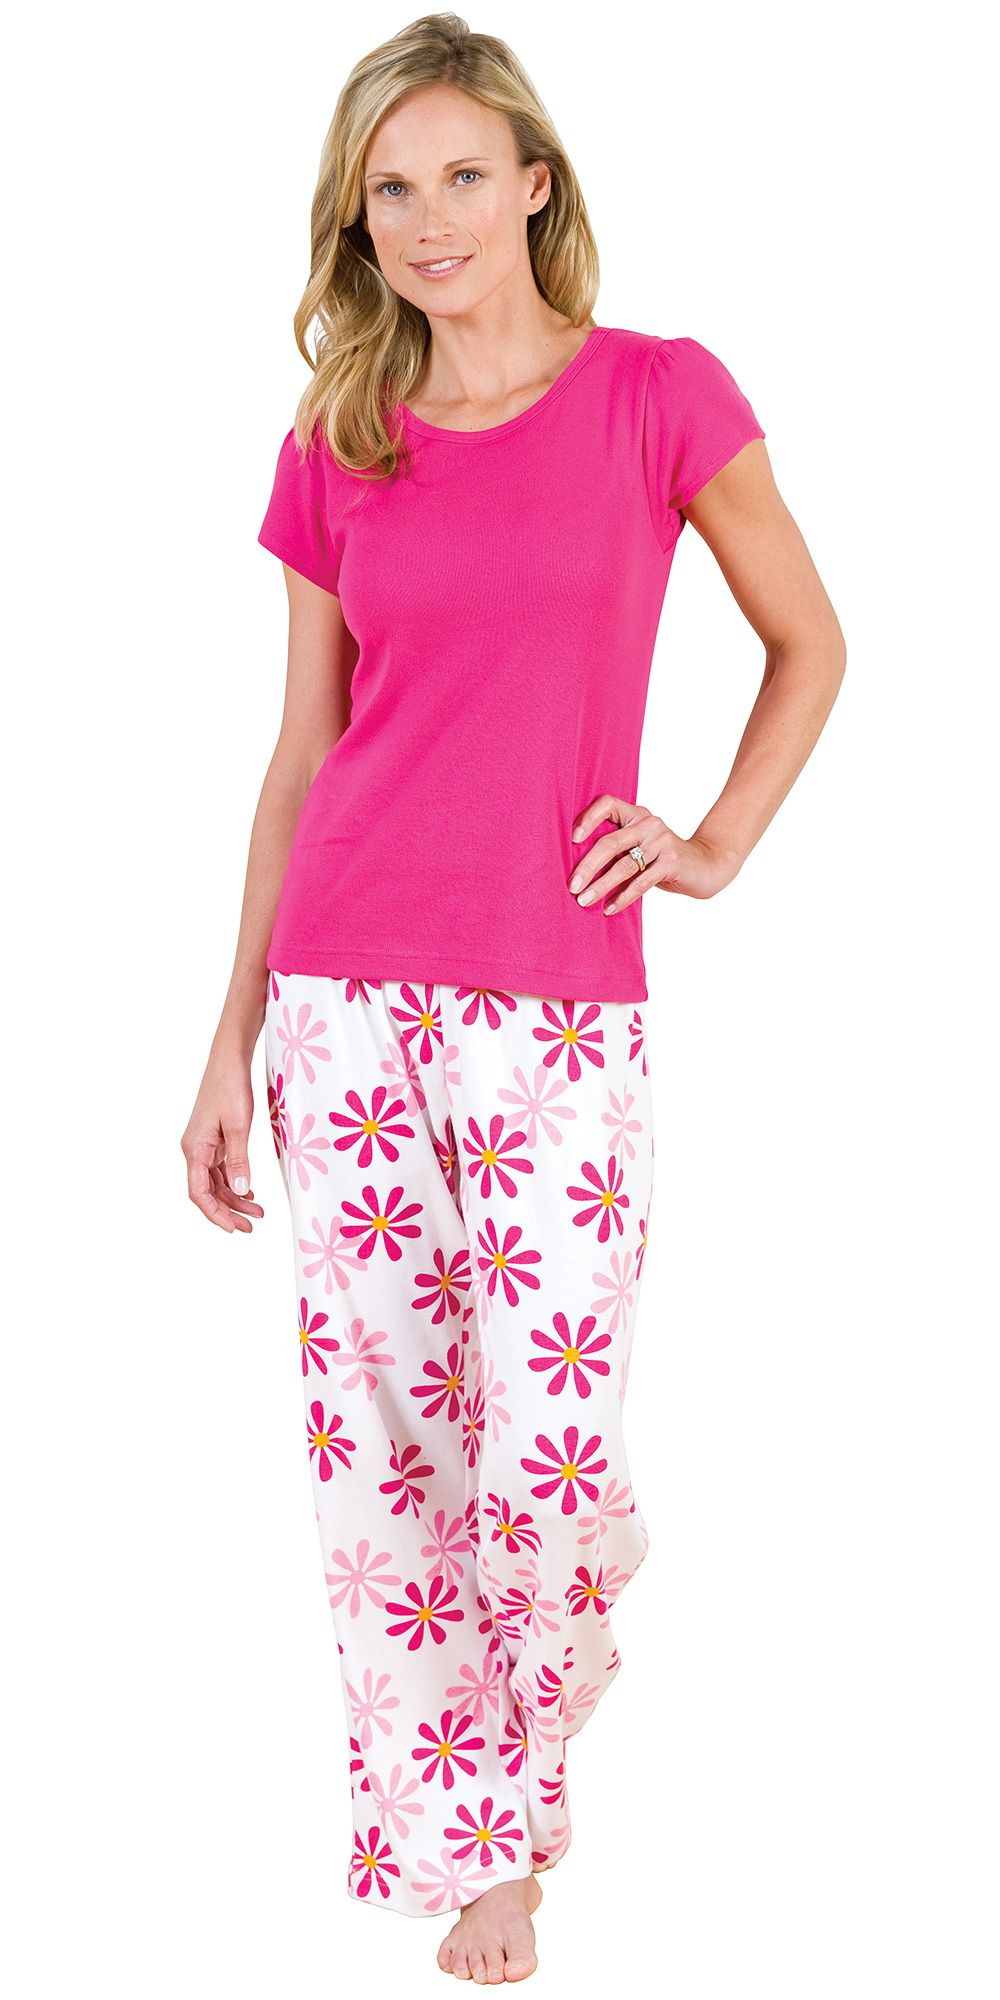 Fuchsia Daisy TJs for Women - Pajamas from PajamaGram.  55.99  Daisy   Pajamas 0c9752983